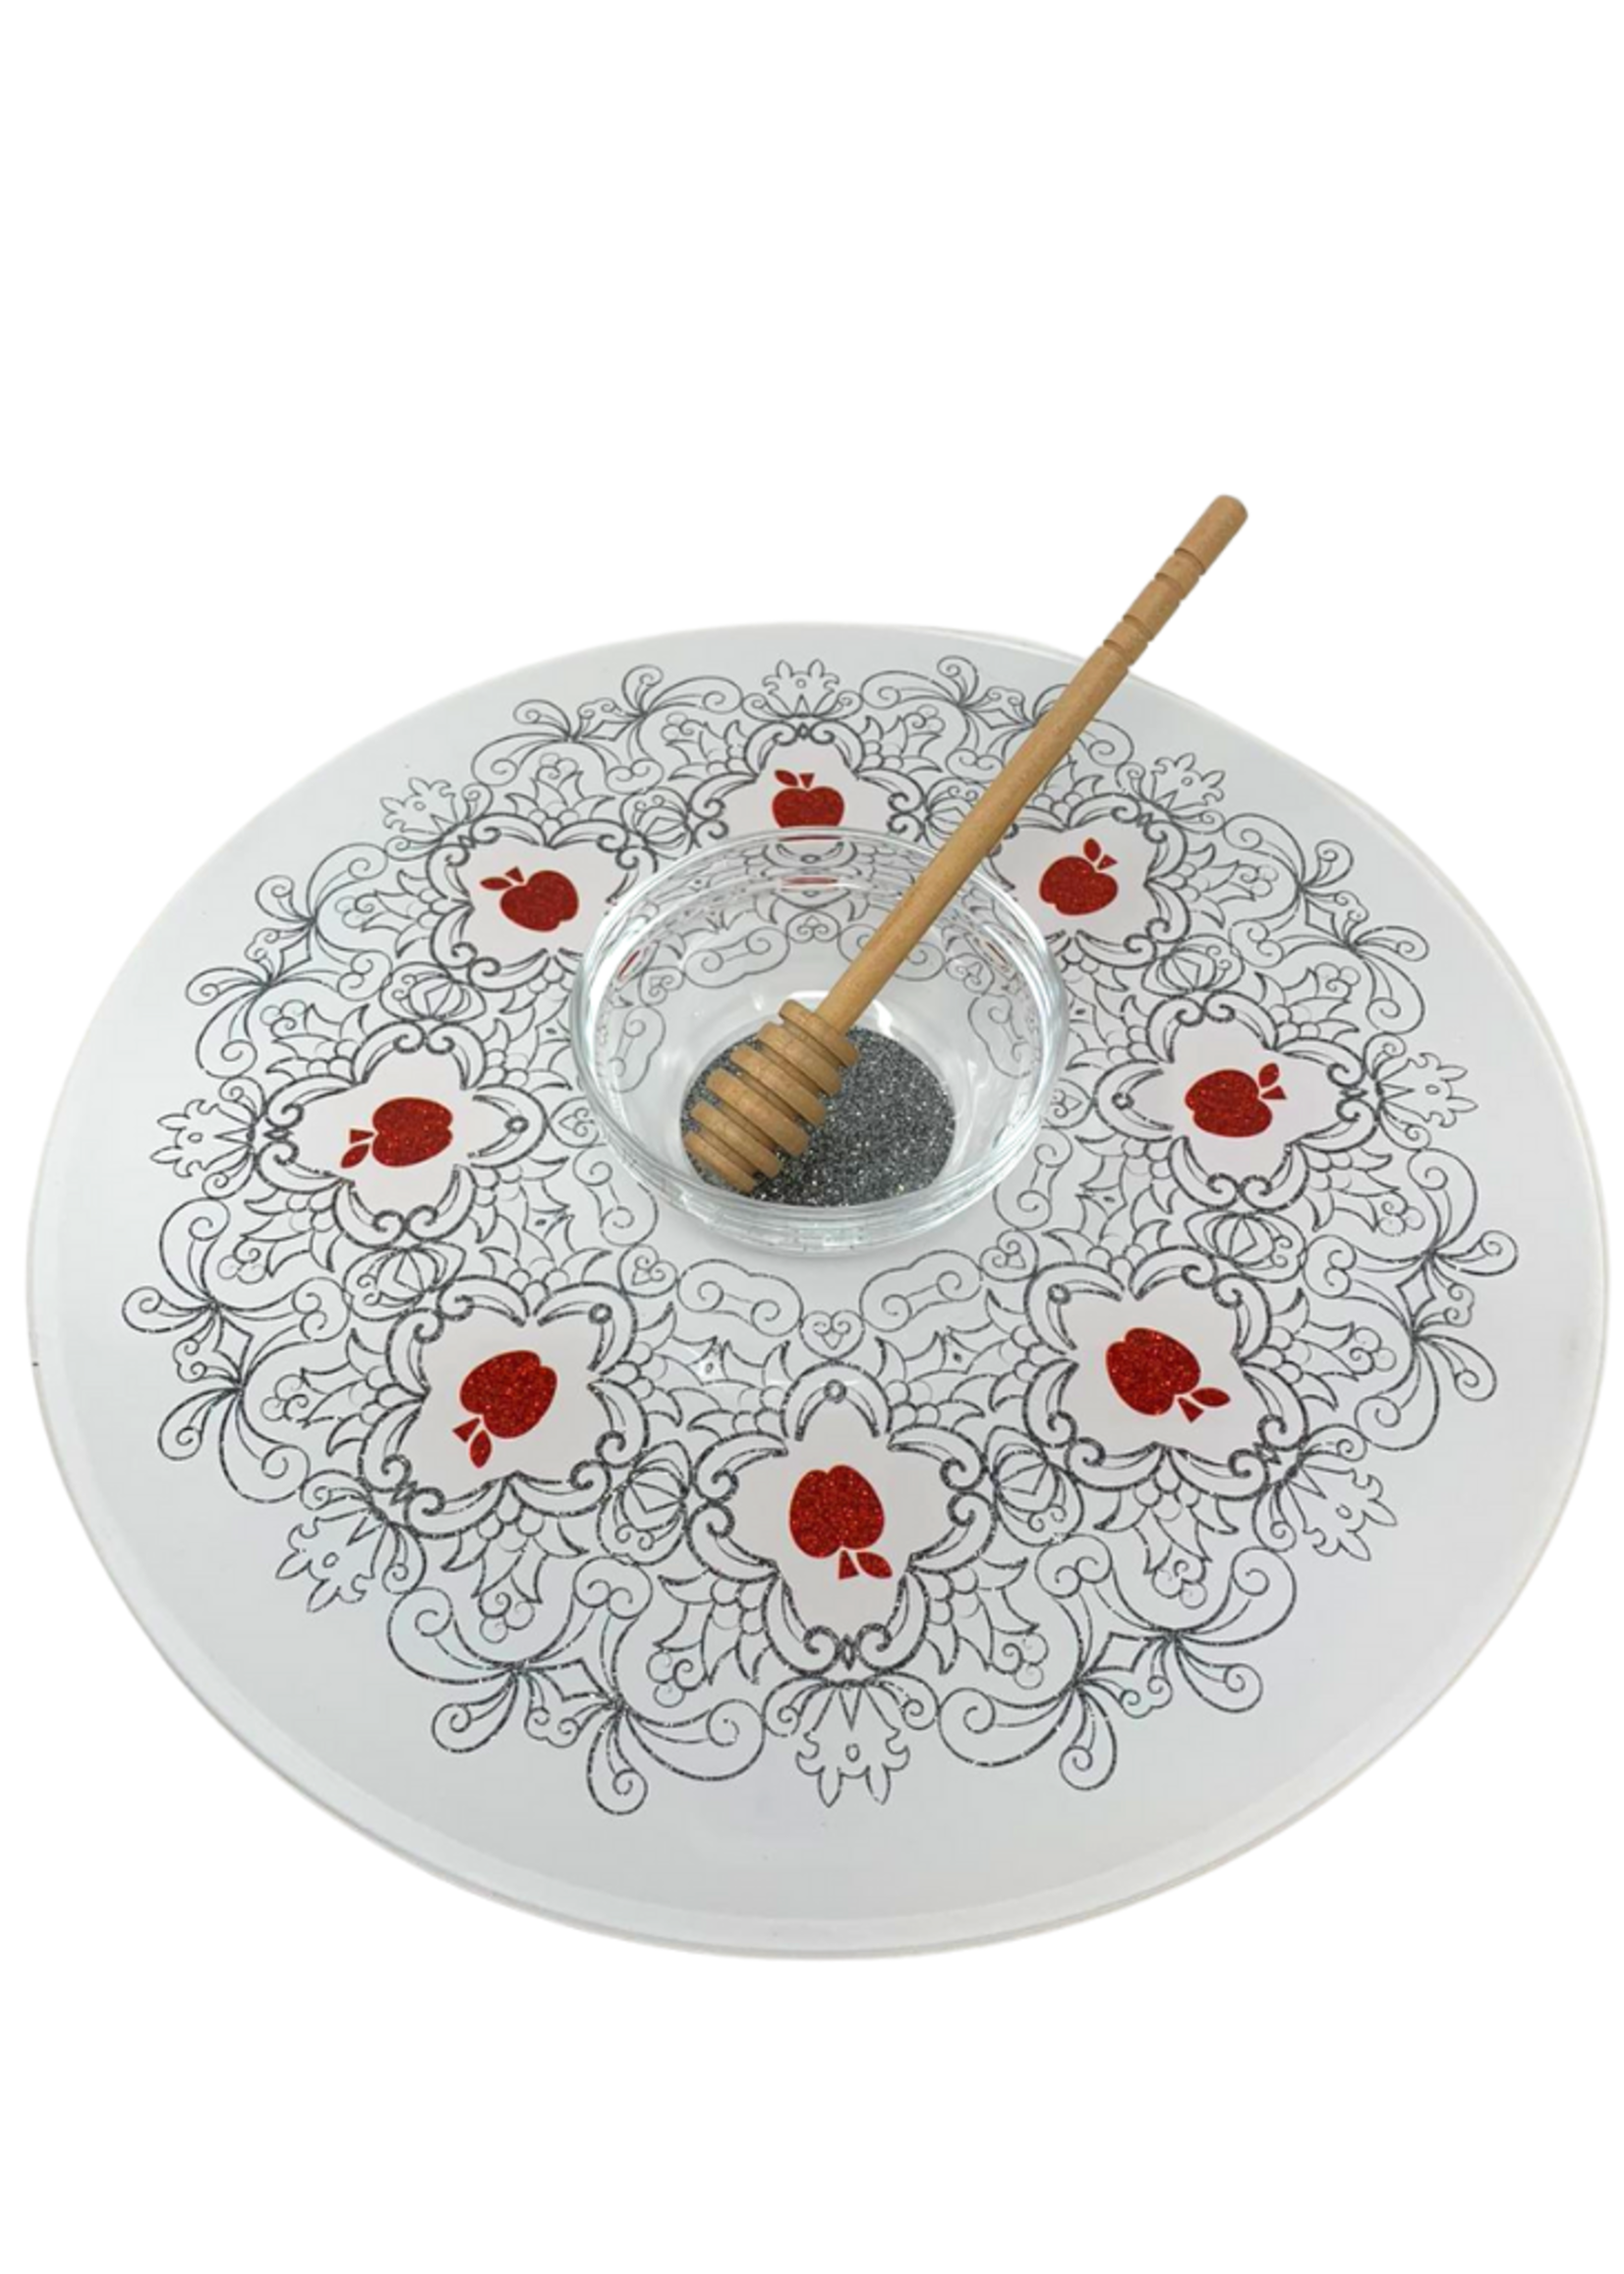 Acrylic Lazy Susan with Honey Cup & Dipper // Red Apple Design